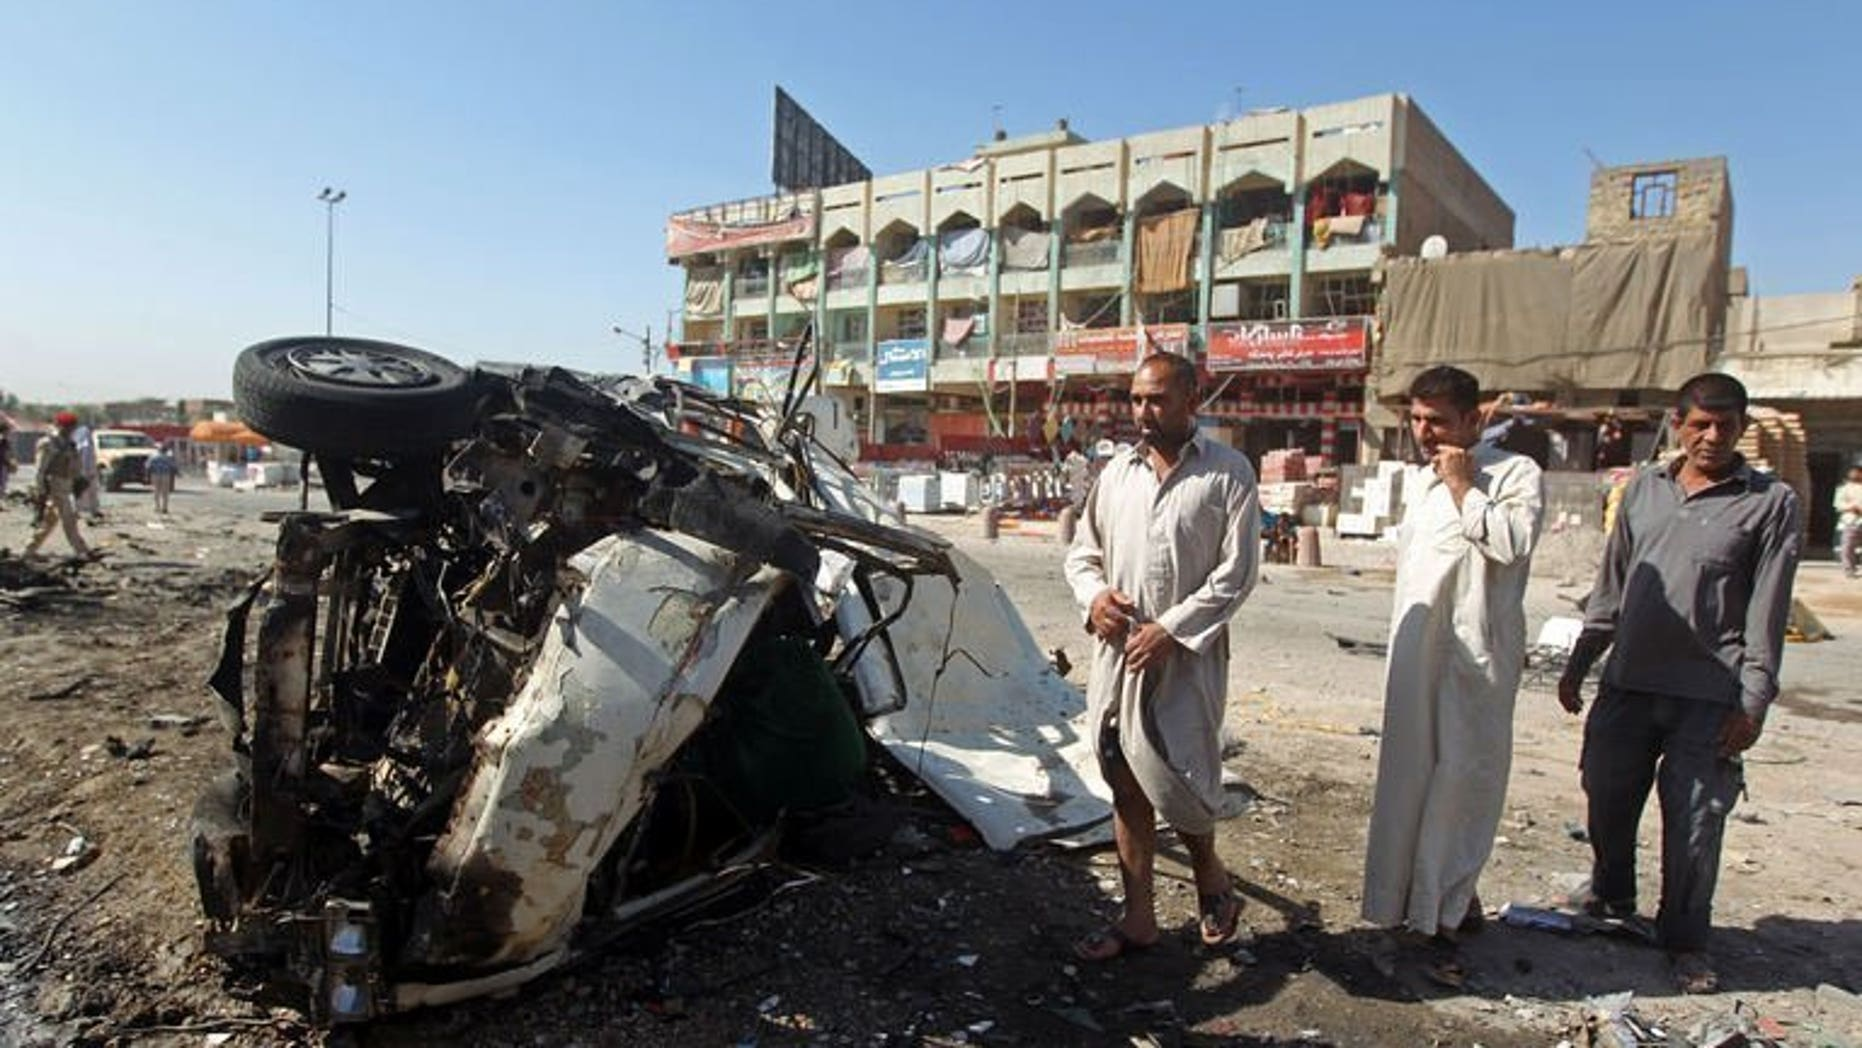 Iraqis inspect the site of a car bomb in the impoverished district of Sadr City, on July 29, 2013. At least nine people are killed and 19 wounded in a spate of attacks as the country witnesses its deadliest violence since 2008.